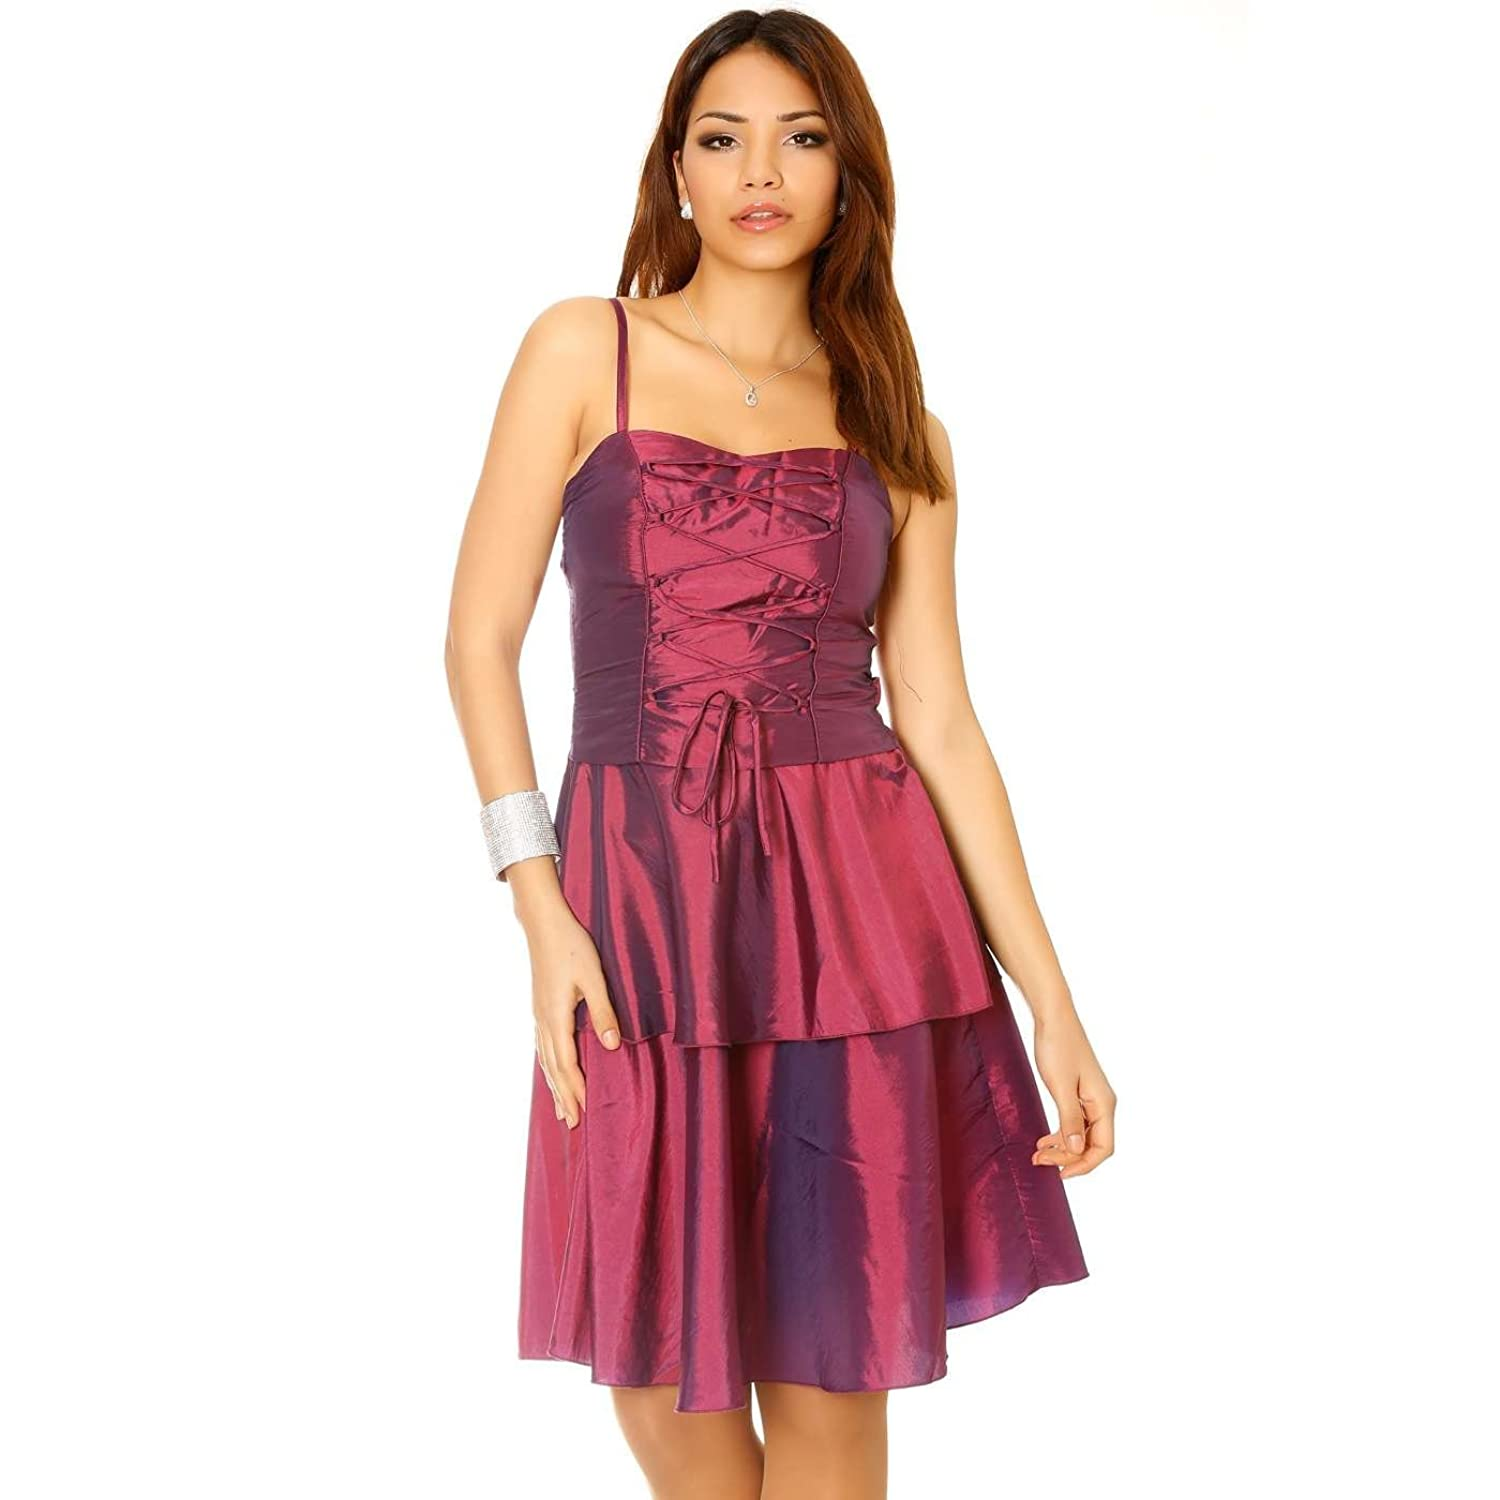 Miss Line?-?Shiny Plum with Lace Evening Dress, Cocktail Dress, Wedding & Party Wear